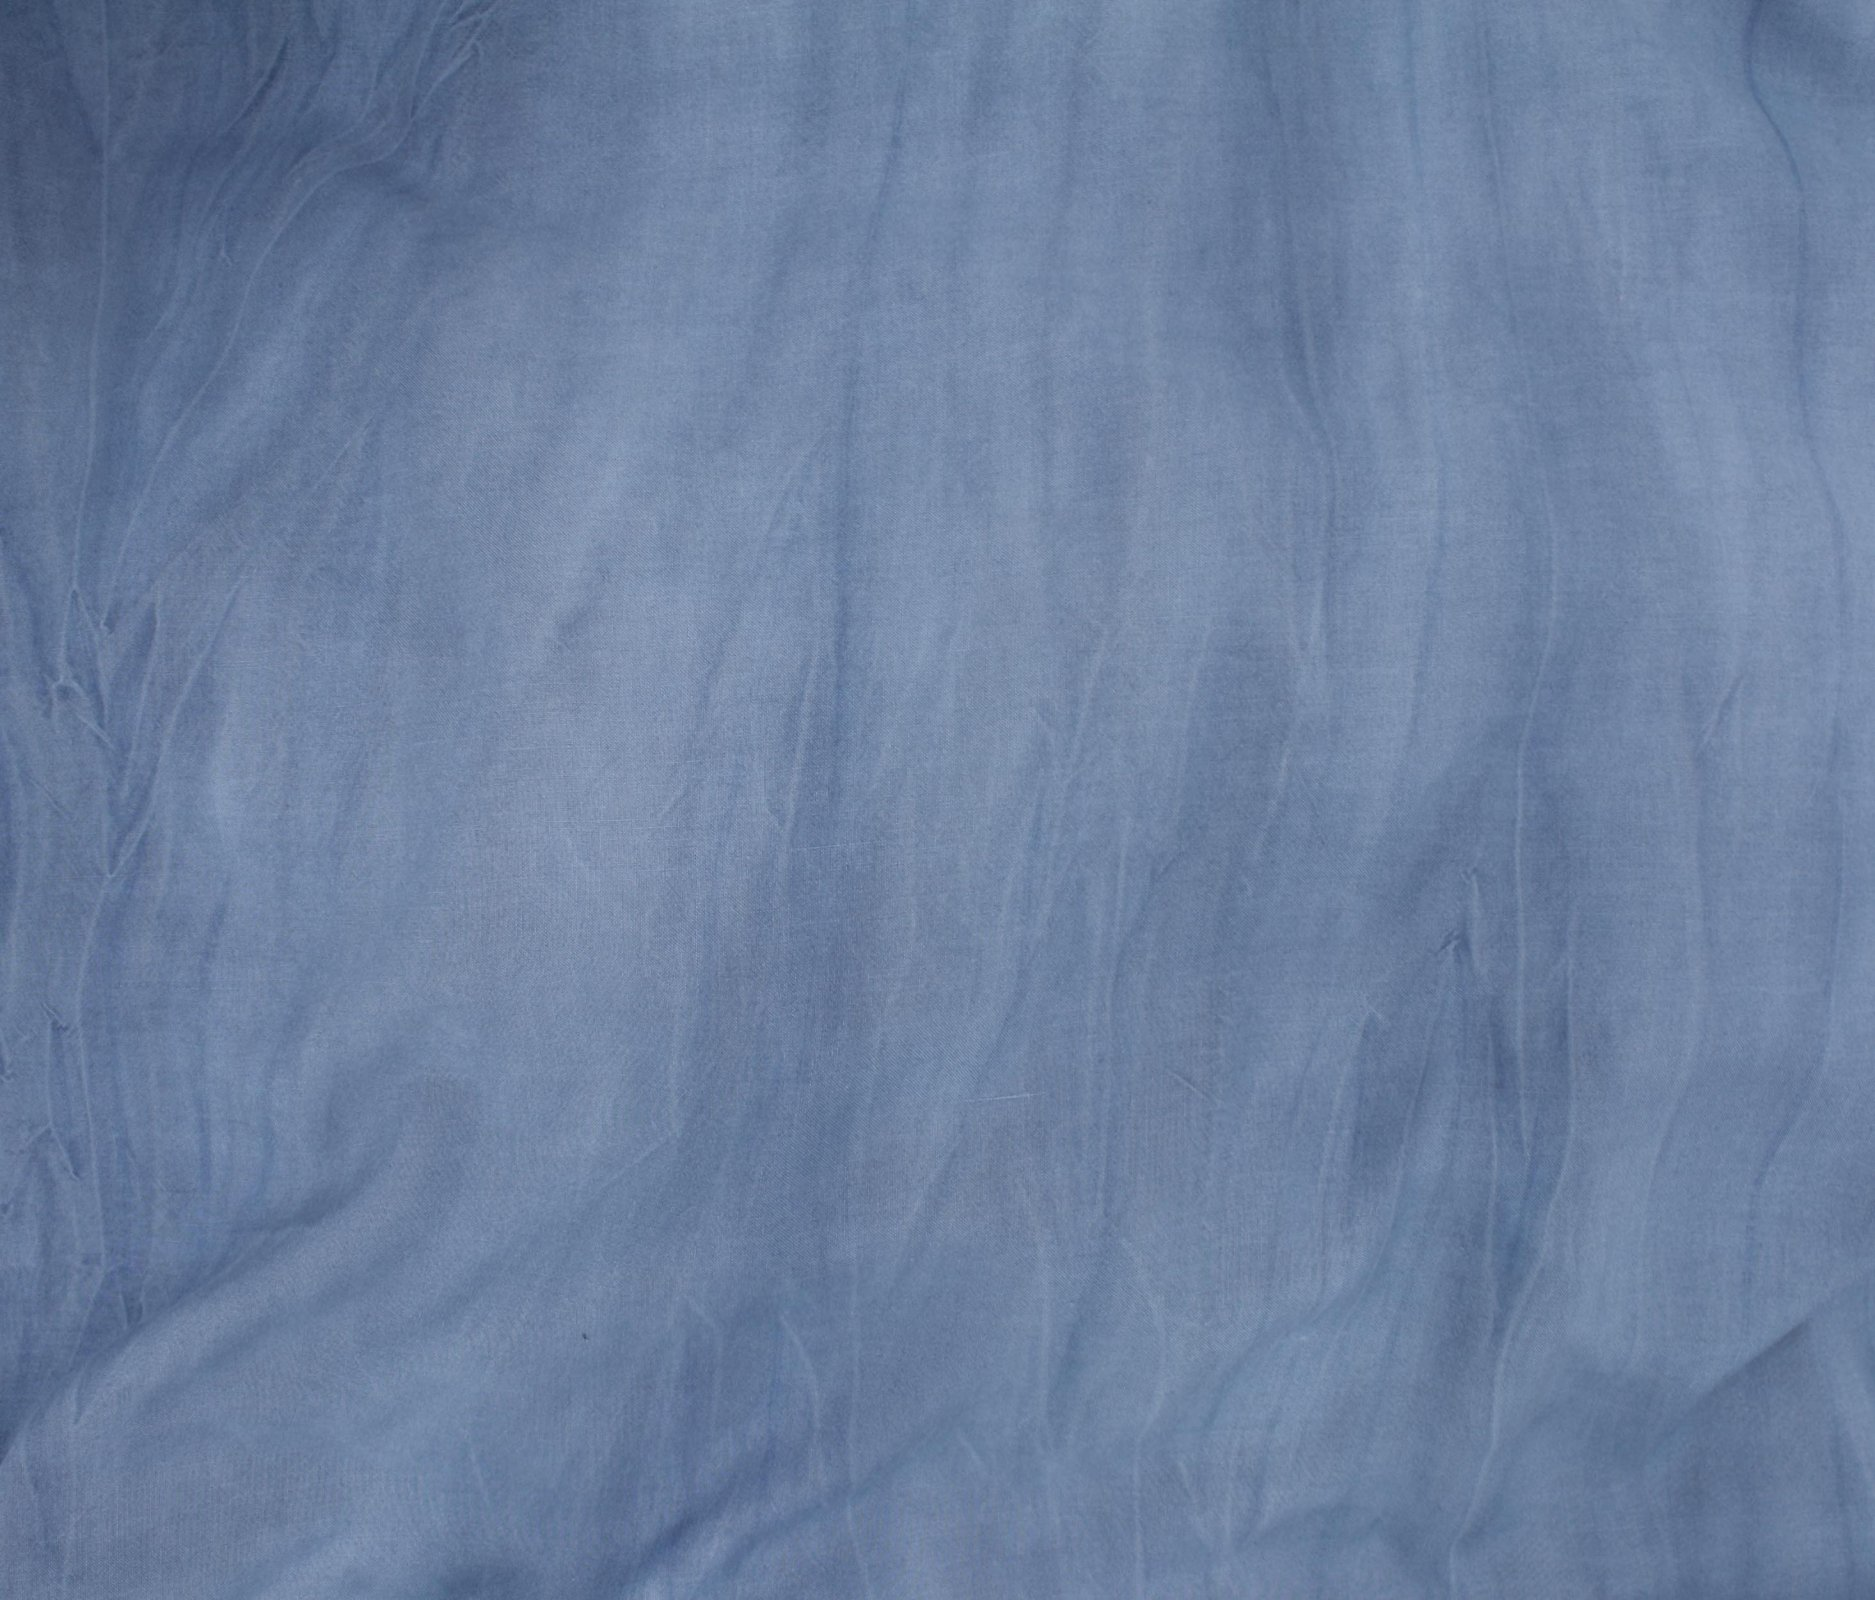 Sandwashed Rayon Challis - Denim Blue